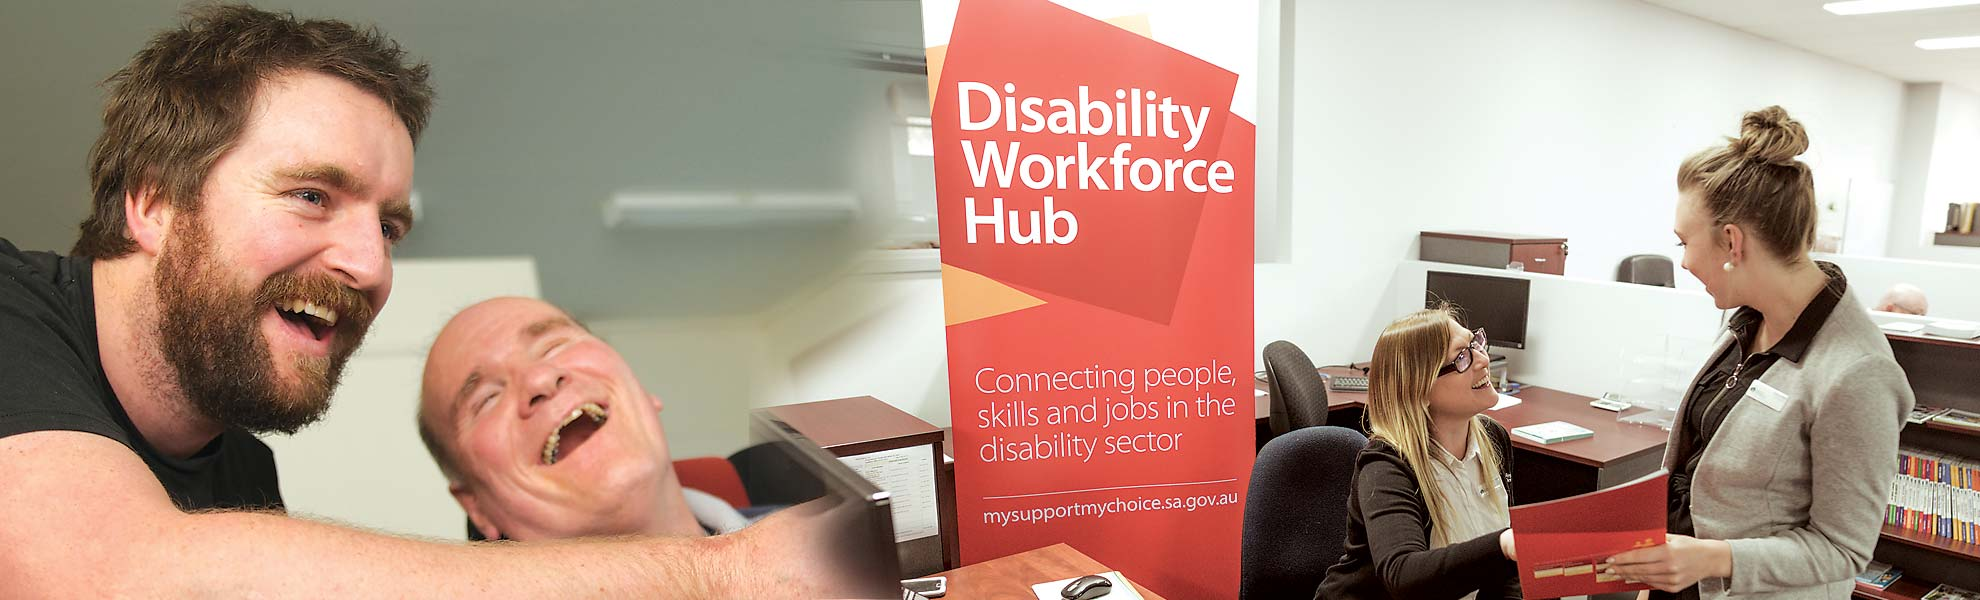 Disability Workforce Hub - NDIS